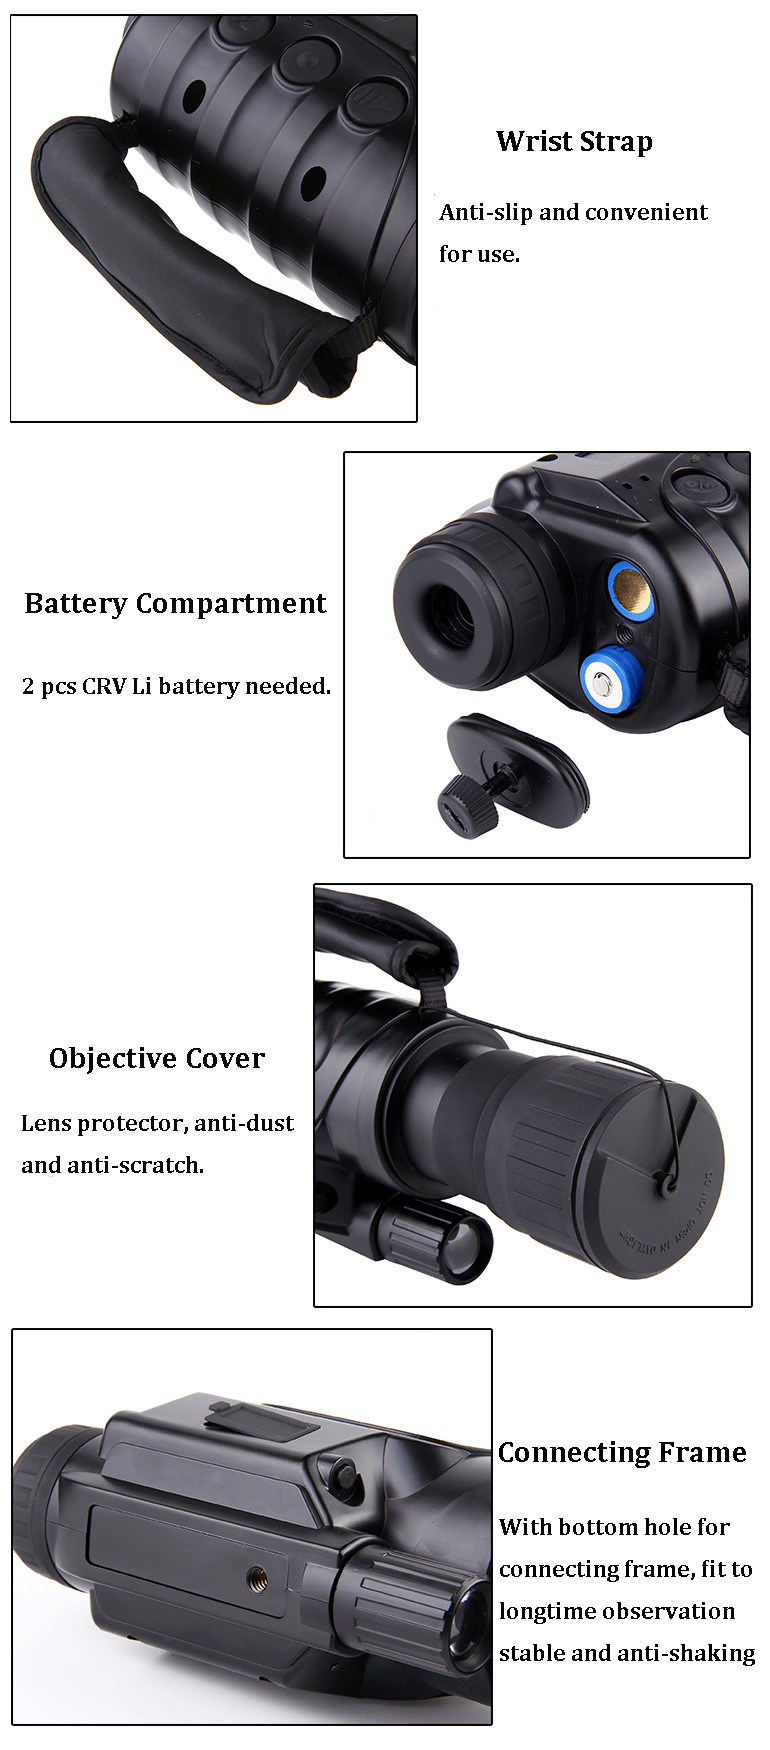 IPRee 6x50 Outdoor Digital Night Vision Telescope Infrared Ray HD Clear Vision Monocular Device Optic Lens Eyepiece Photography Recording With Video Output For Camping Hiking Travel Hunting